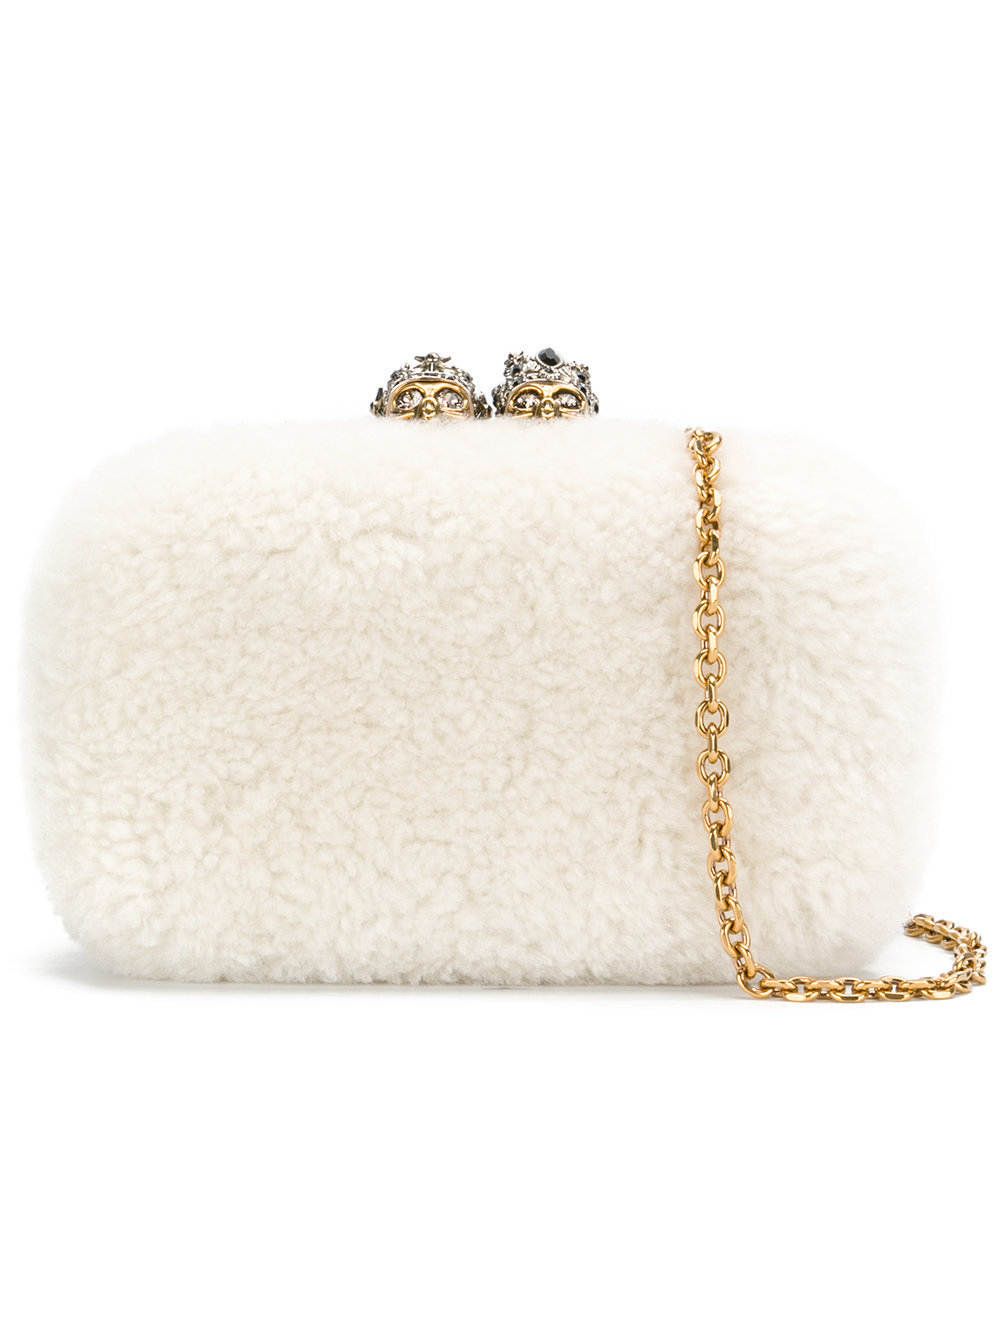 【関税送料込】alexander mcqueen King and Queen バッグ